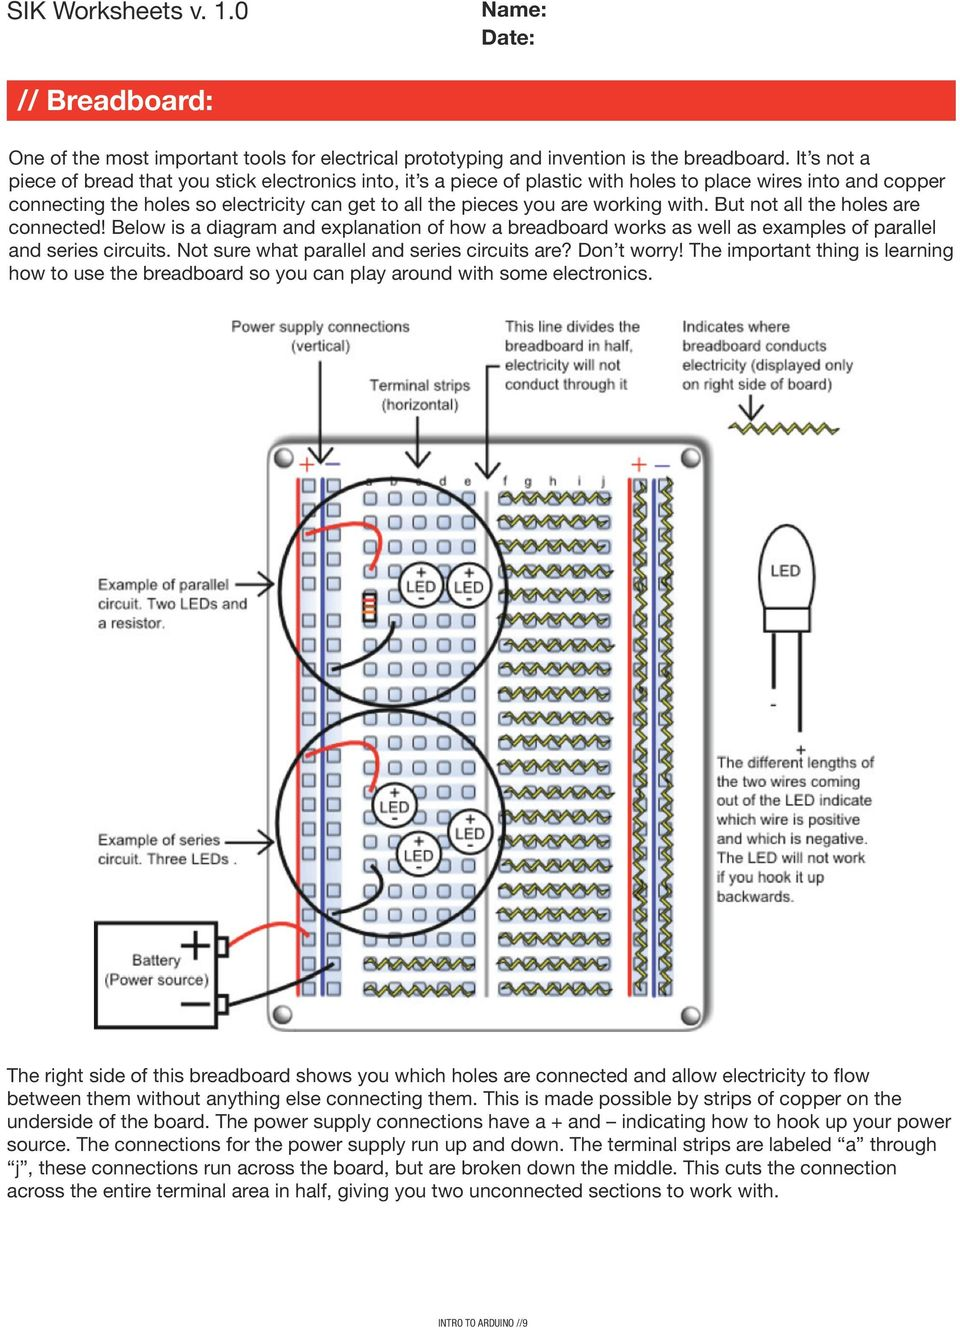 working with. But not all the holes are connected! Below is a diagram and explanation of how a breadboard works as well as examples of parallel and series circuits.